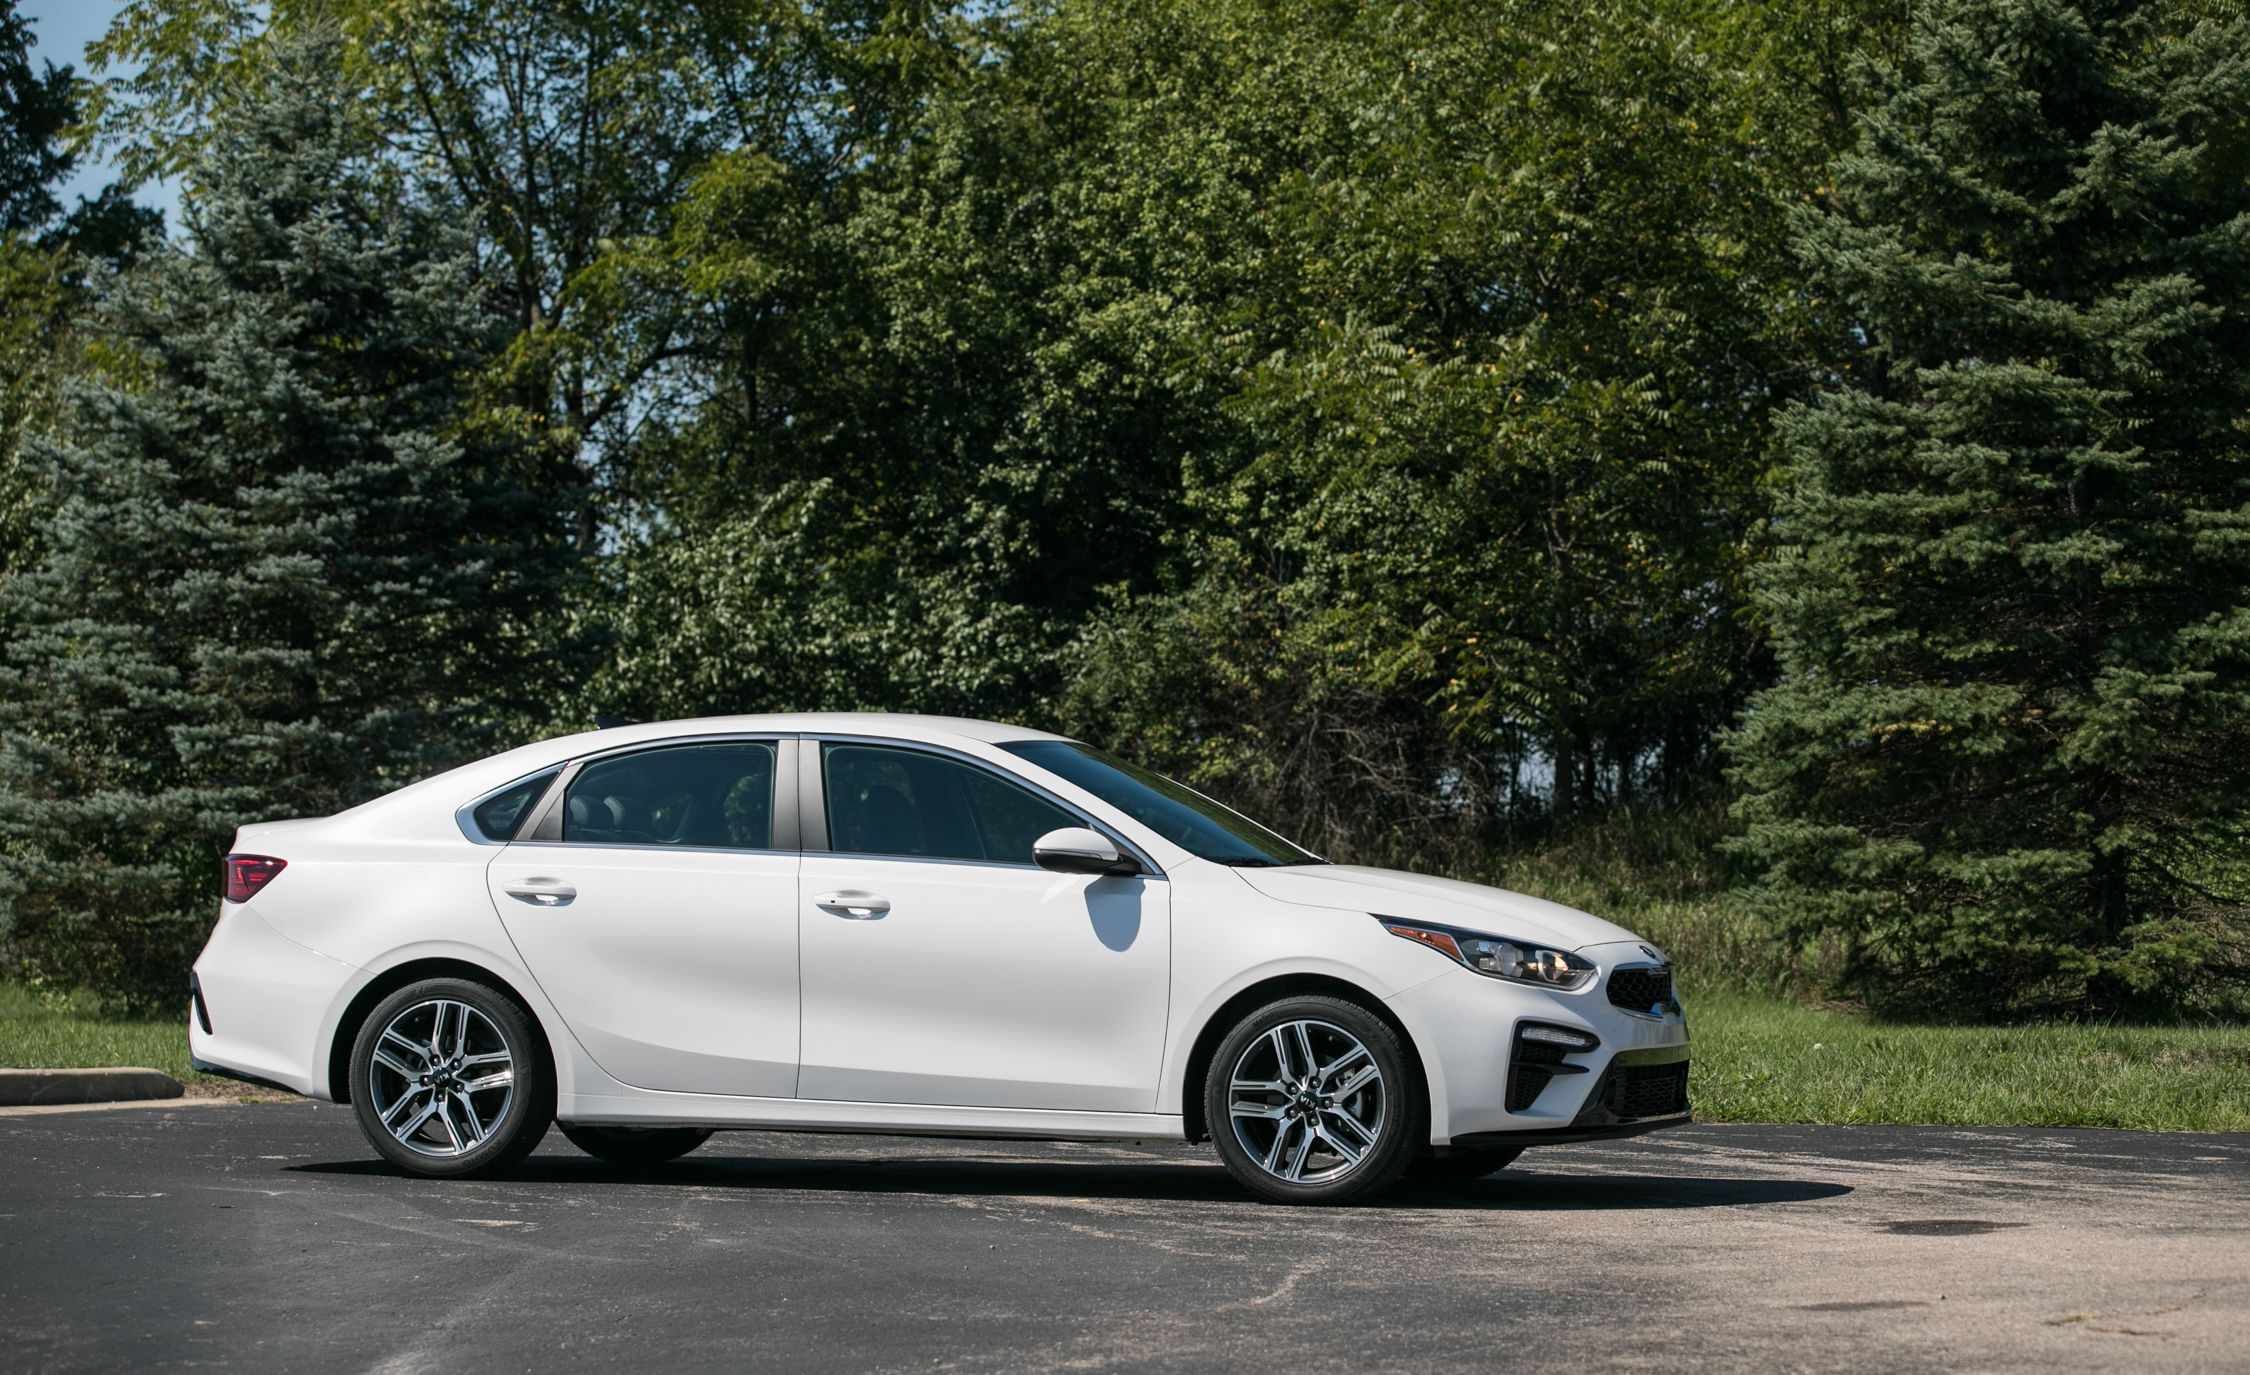 40 New 2019 Cars That Come with a Manual Transmission